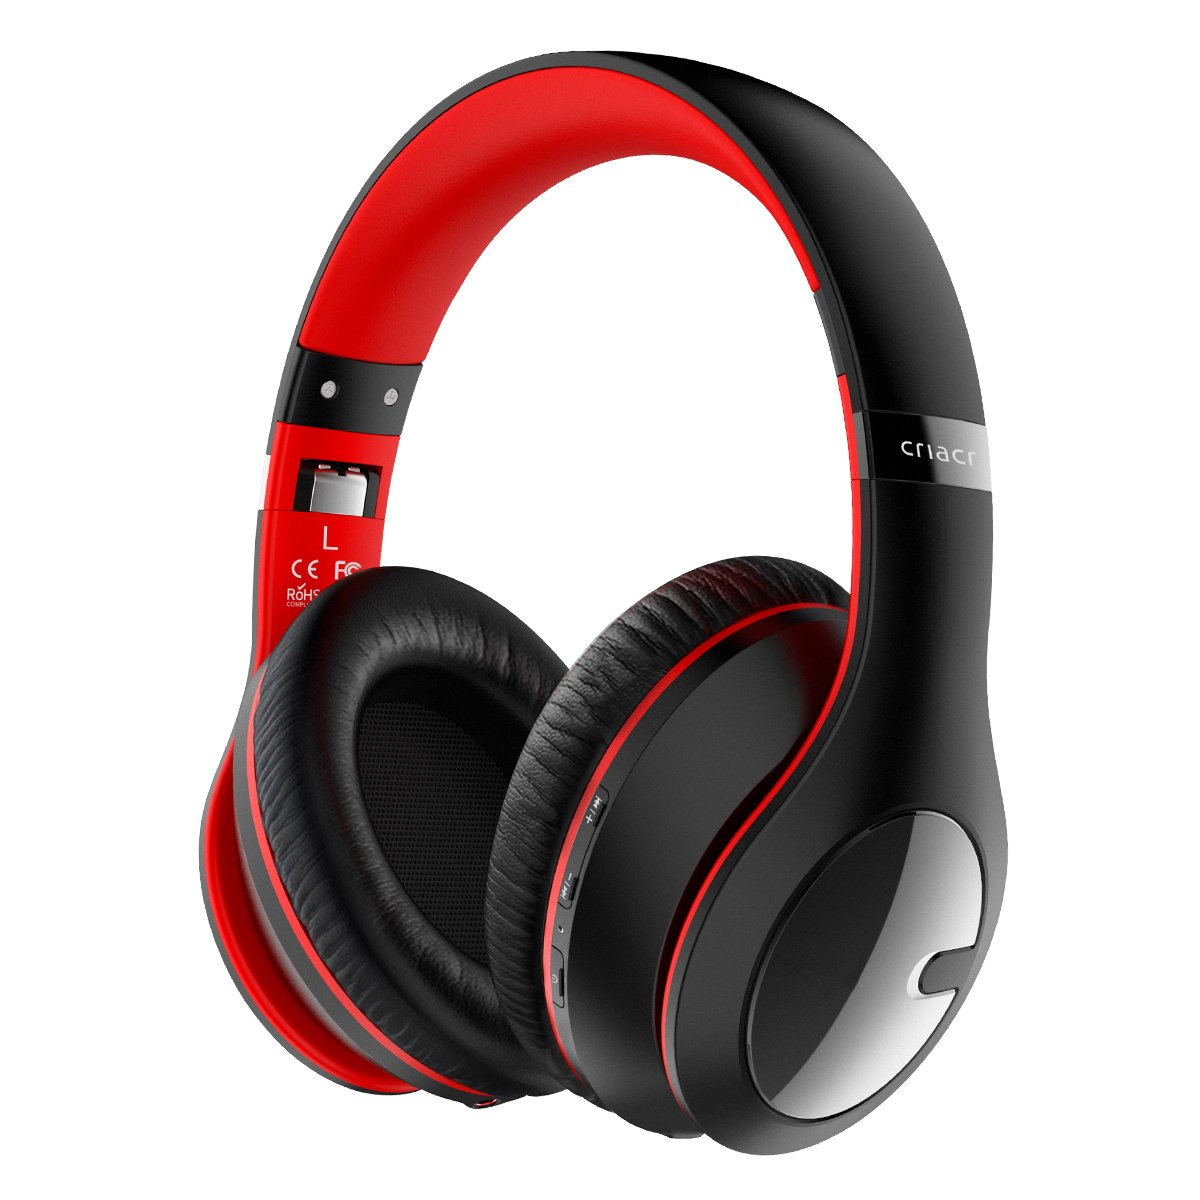 Criacr Bluetooth Headphones, Foldable Lightweight Over Ear Wireless Headsets with Hi-Fi Stereo, 3.5mm Audio Jack, Soft Earmuffs, Built-in Microphone, for Smartphones, Tablet, TV, PC - Red